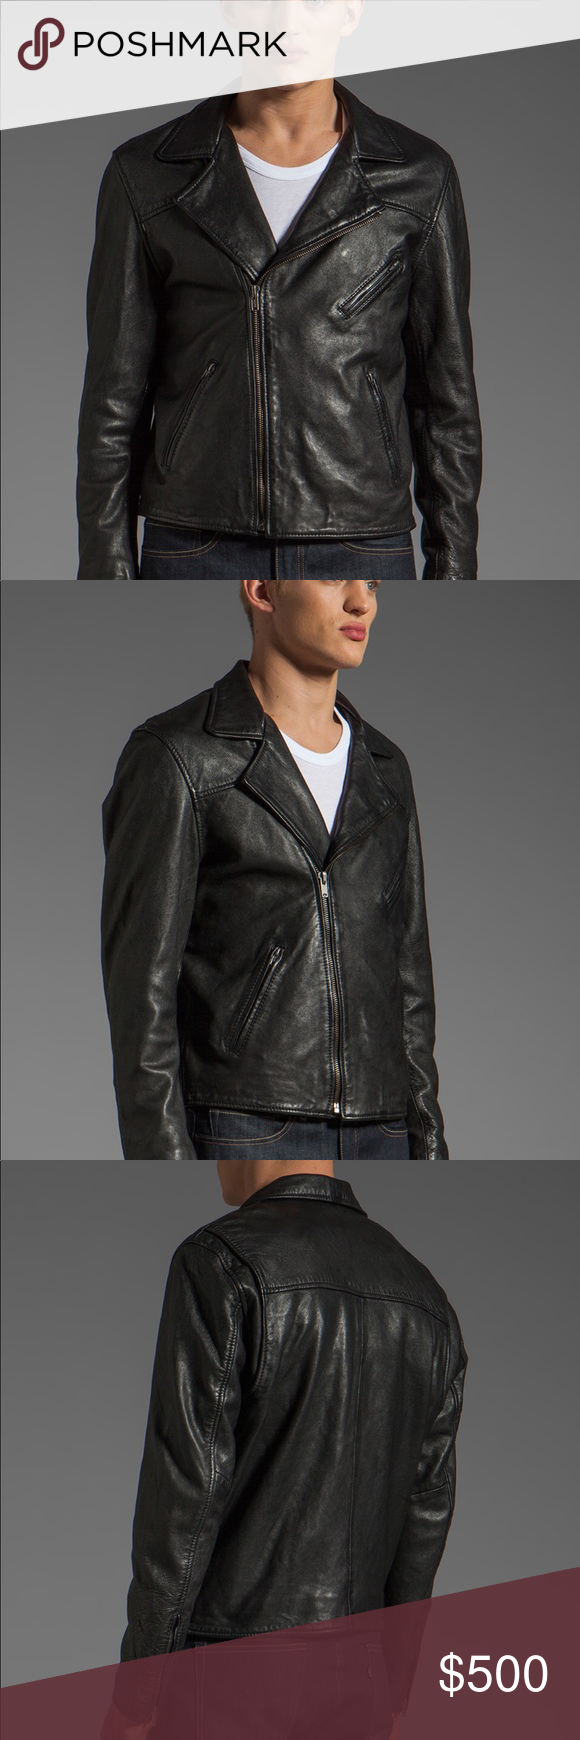 Levi's Made and Crafted Men's Leather Moto Jacket Levi